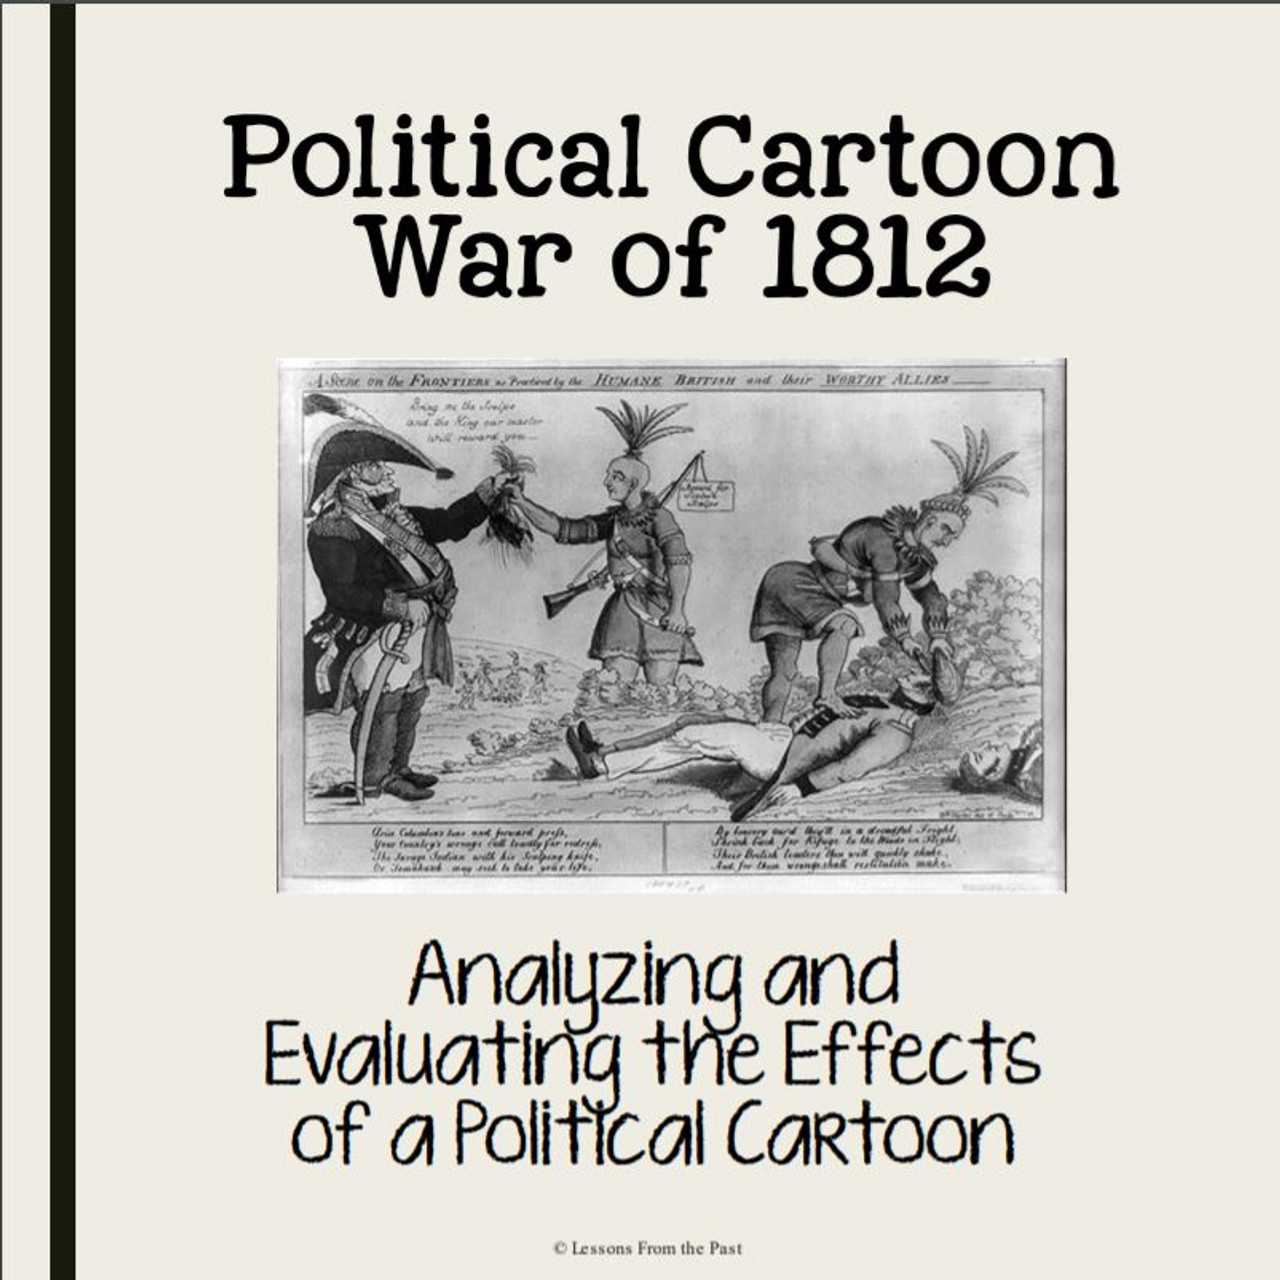 medium resolution of Political Cartoon War of 1812-Were British Actions Humane? - Amped Up  Learning